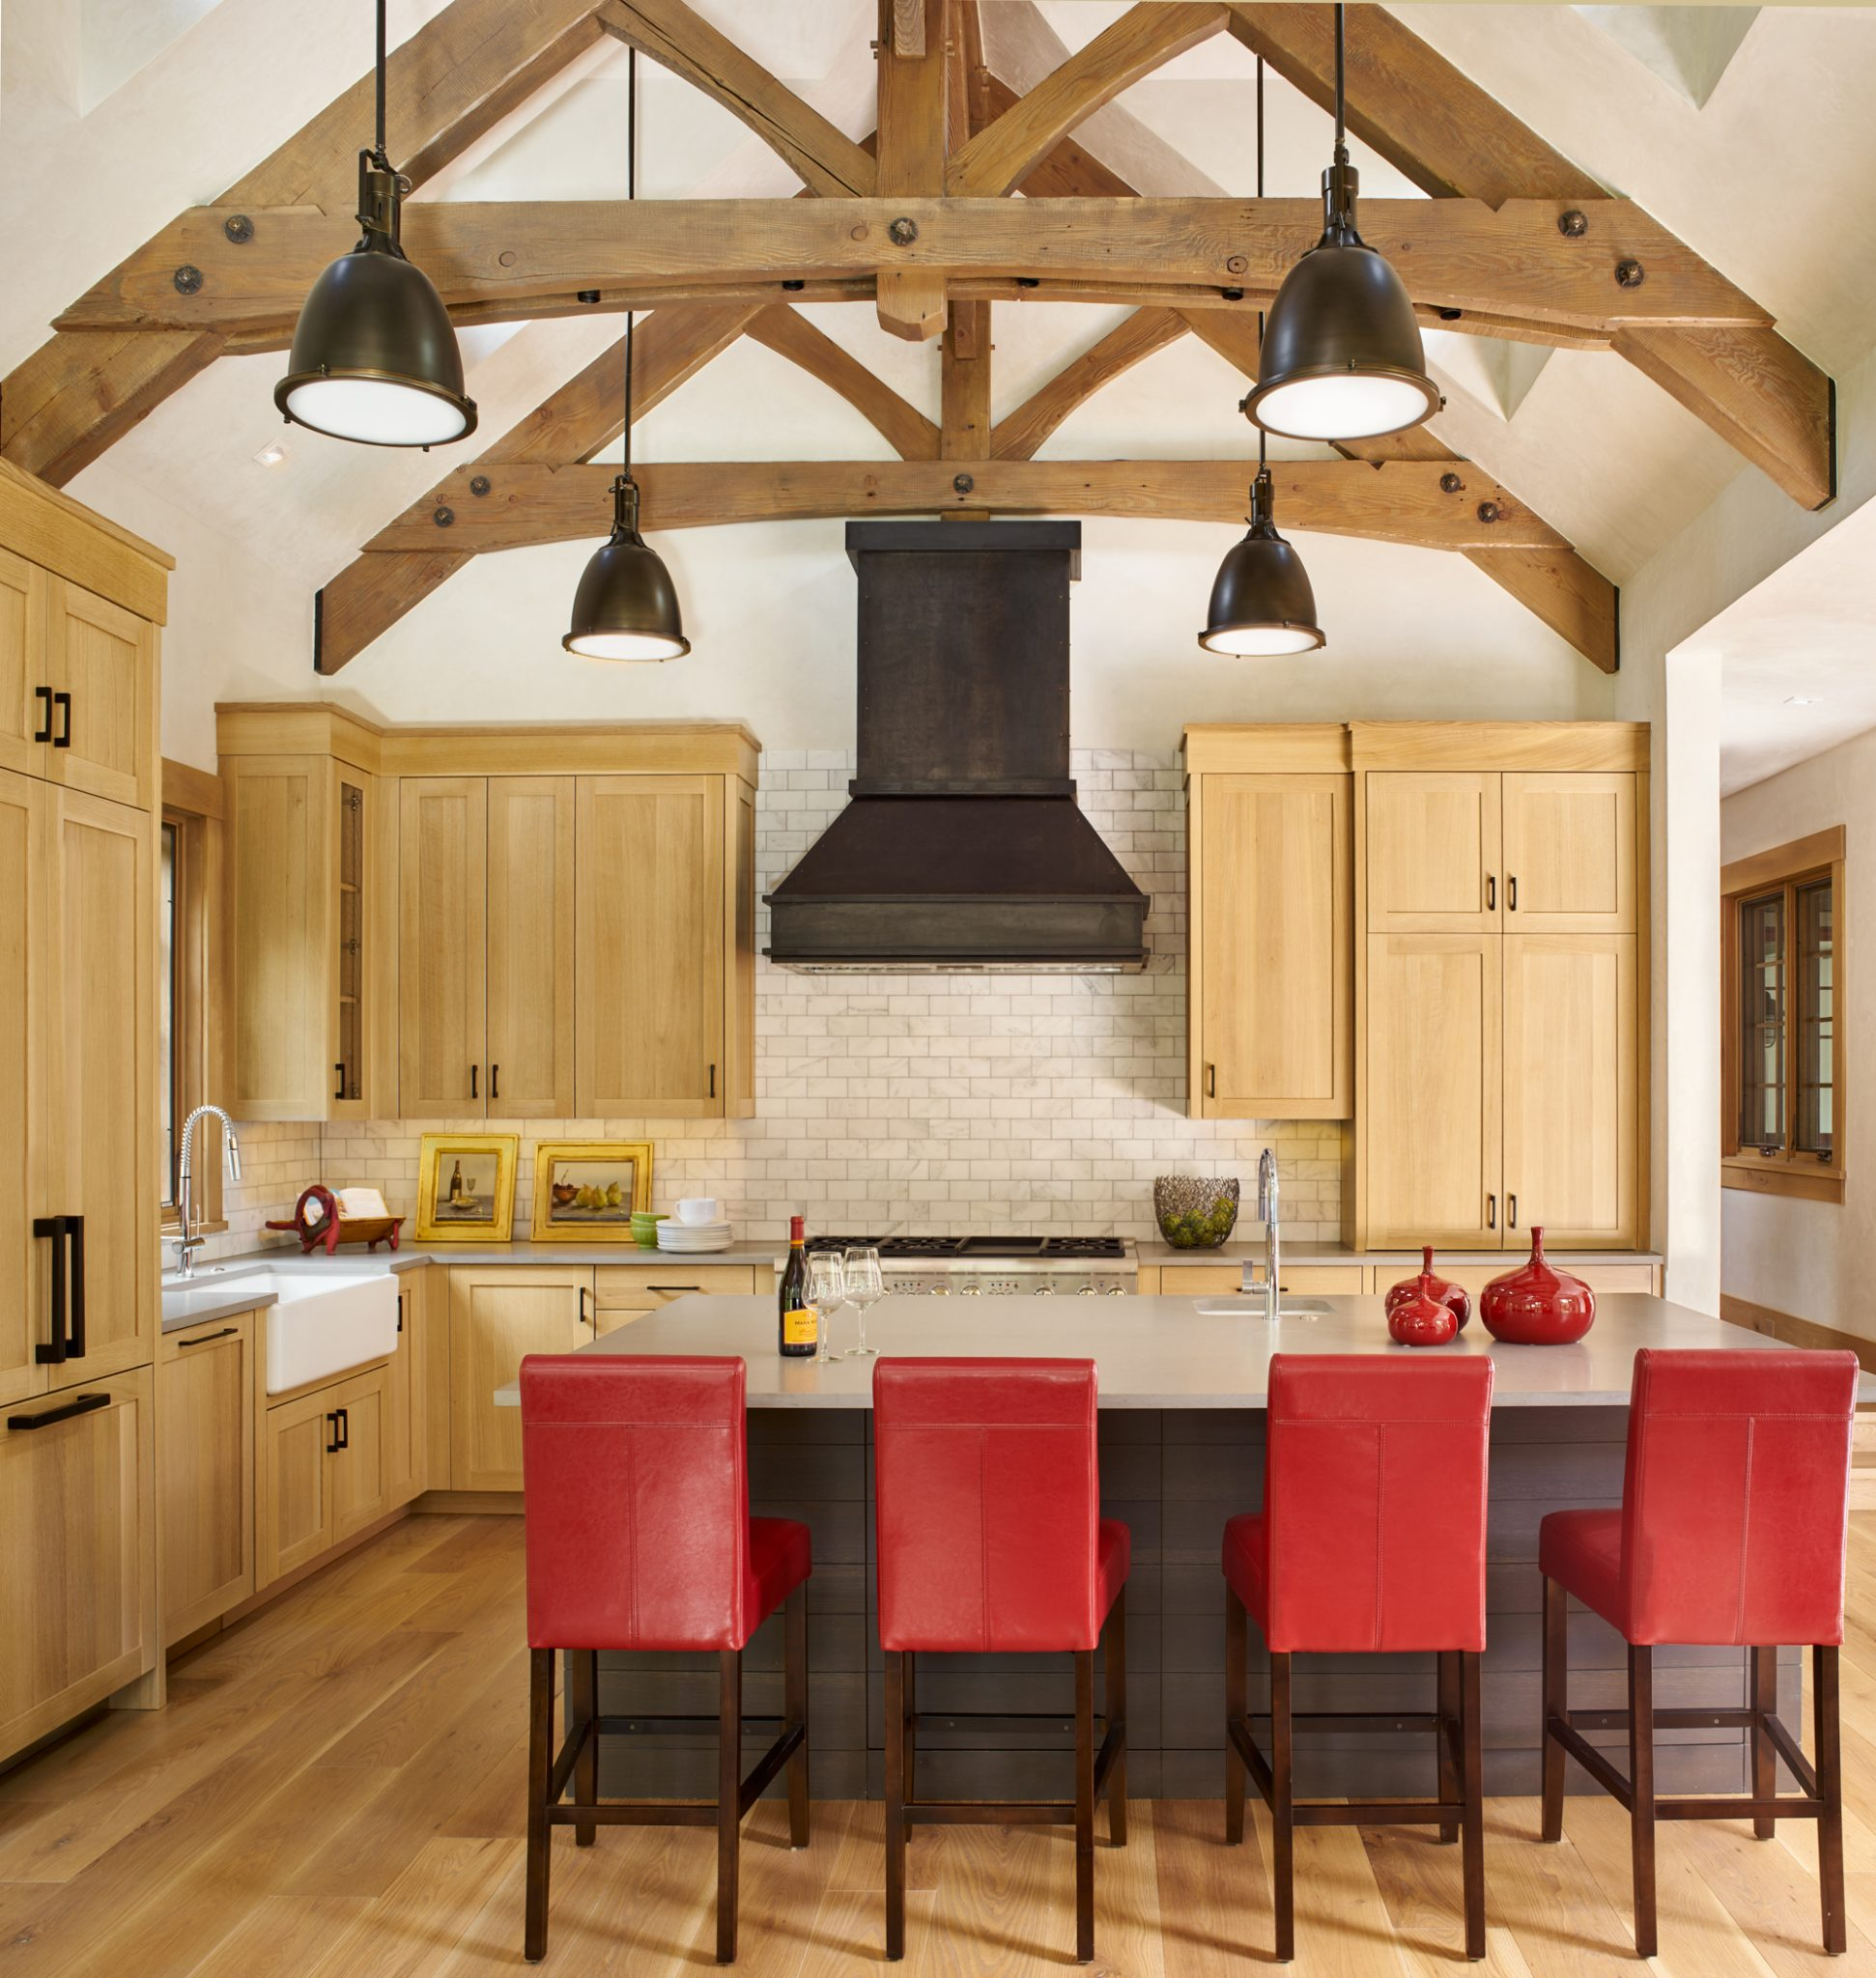 Light wood kitchen with dark stone island and red barstools. by Brewster McLeod Architects